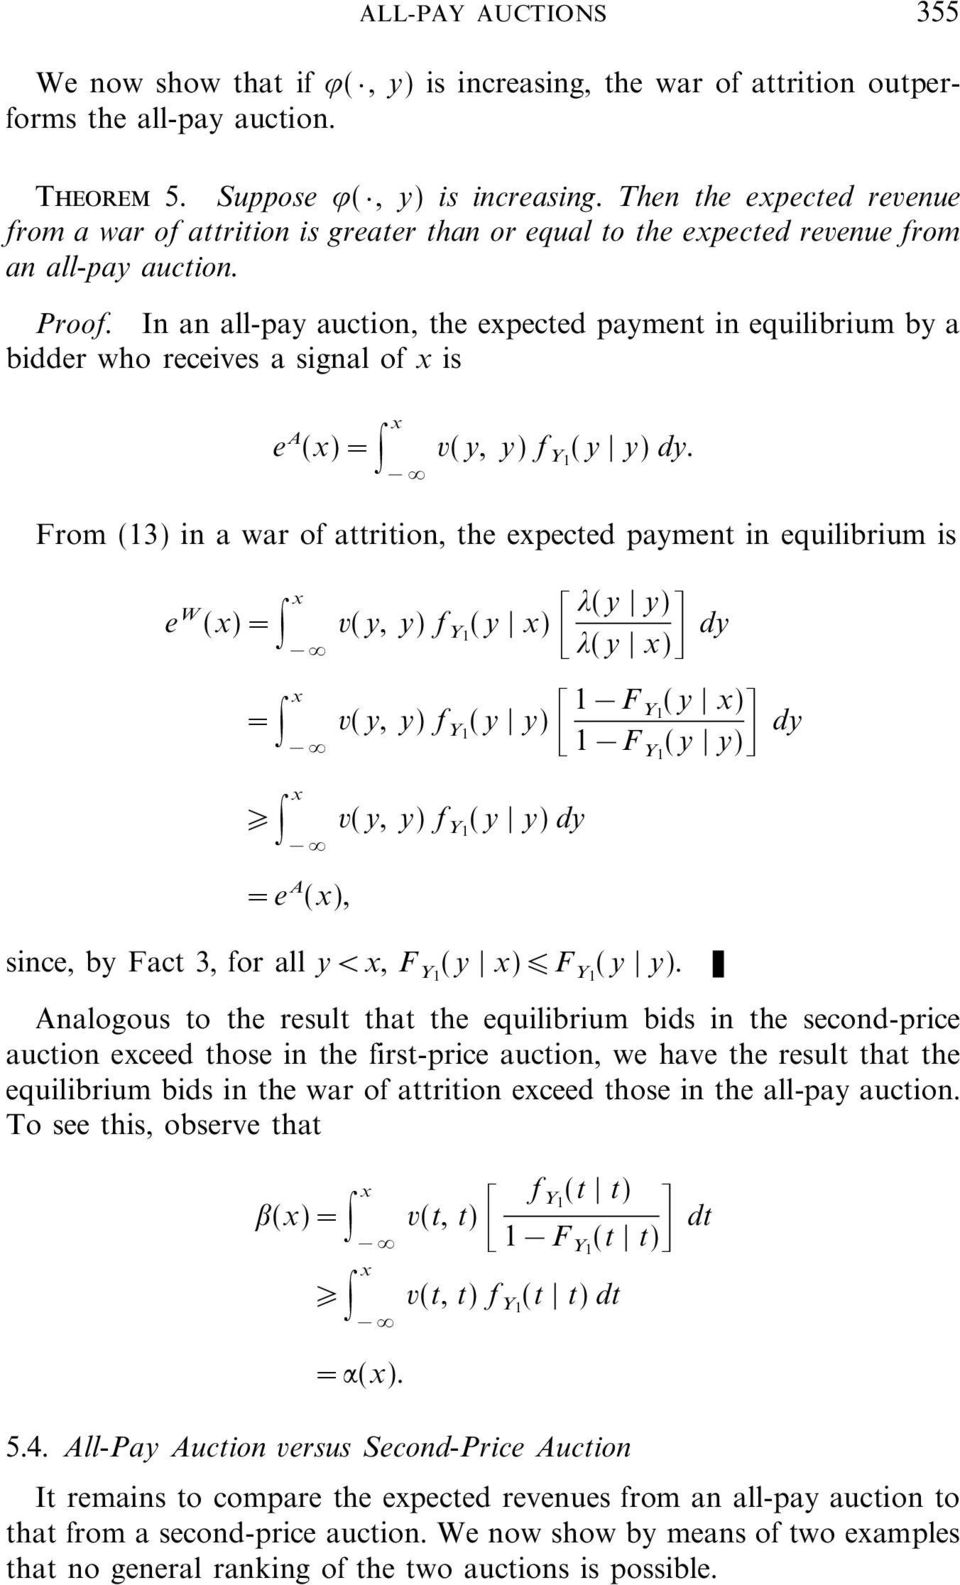 From (13) in a war of attrition, the expected payment in equilibrium is e (x)= W x v(y, y) f Y1 (y x) = x _*(y y) *(y x) dy v( y, y) f Y1 ( y y) _1F Y 1 (y x) 1F Y1 (y y) dy x v( y, y) f Y1 ( y y) dy